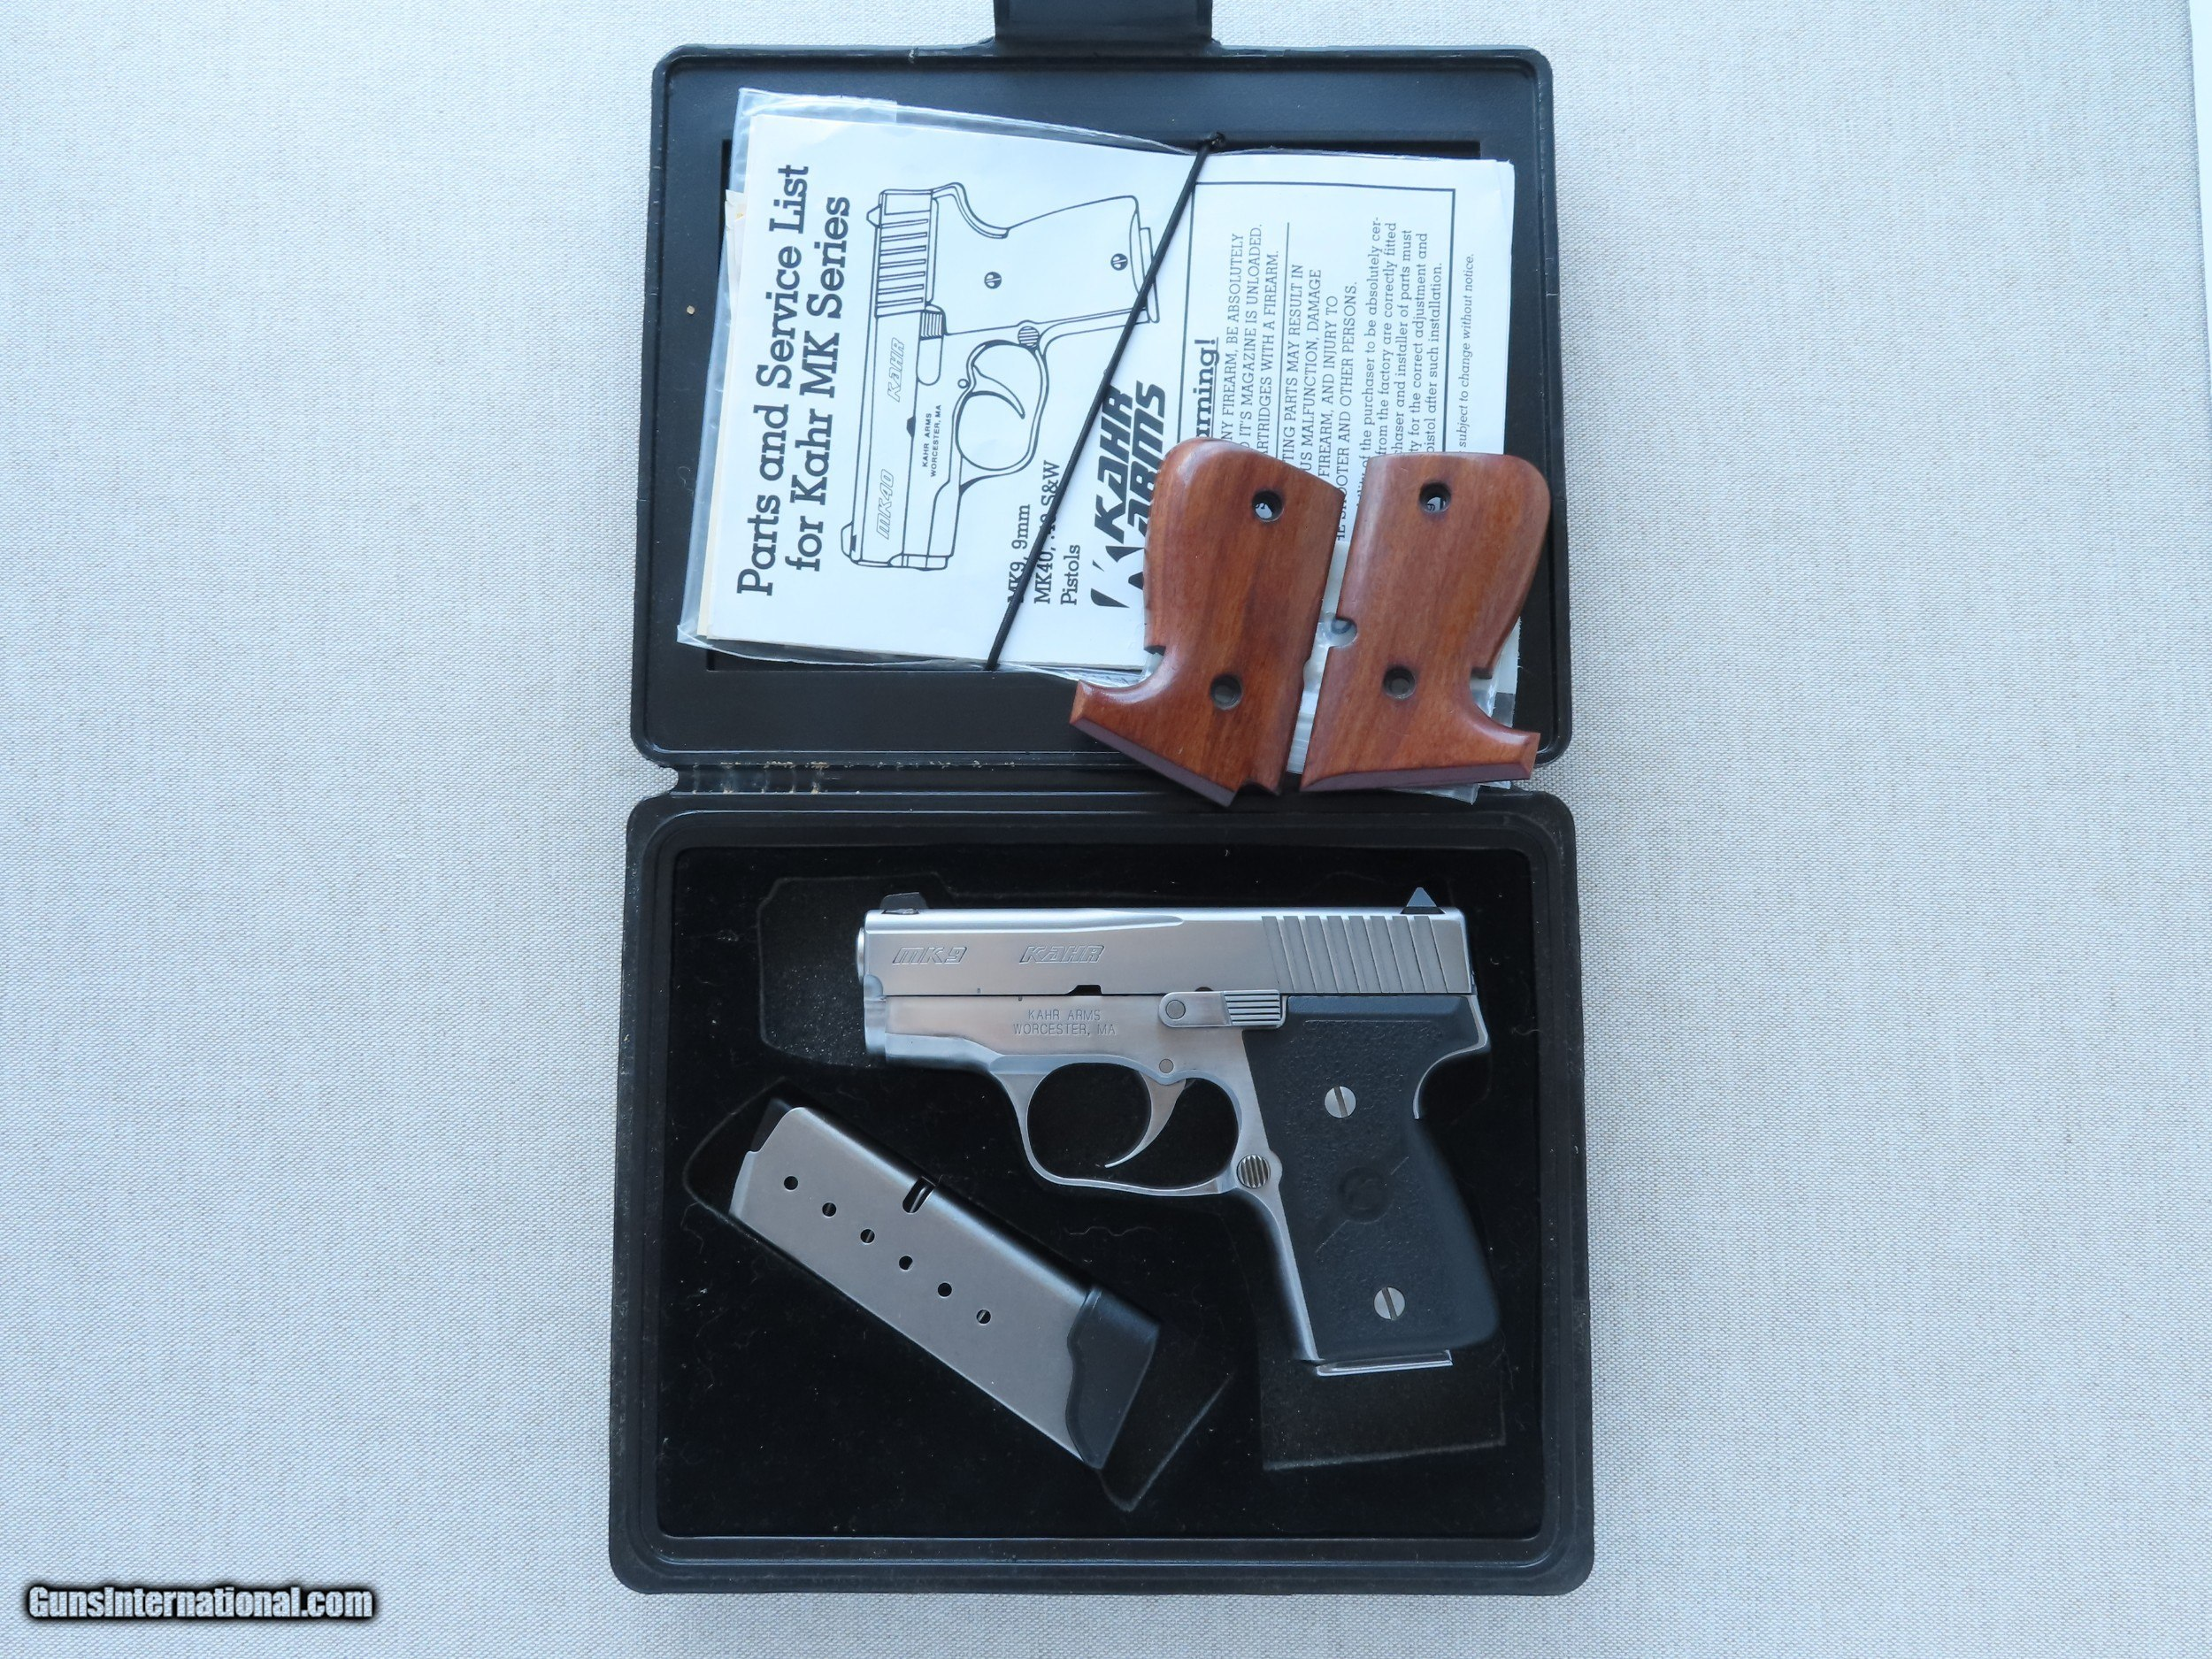 Kahr Mk9 Micro Series Elite 98 Stainless 9mm Pistol w/ Box, Manuals